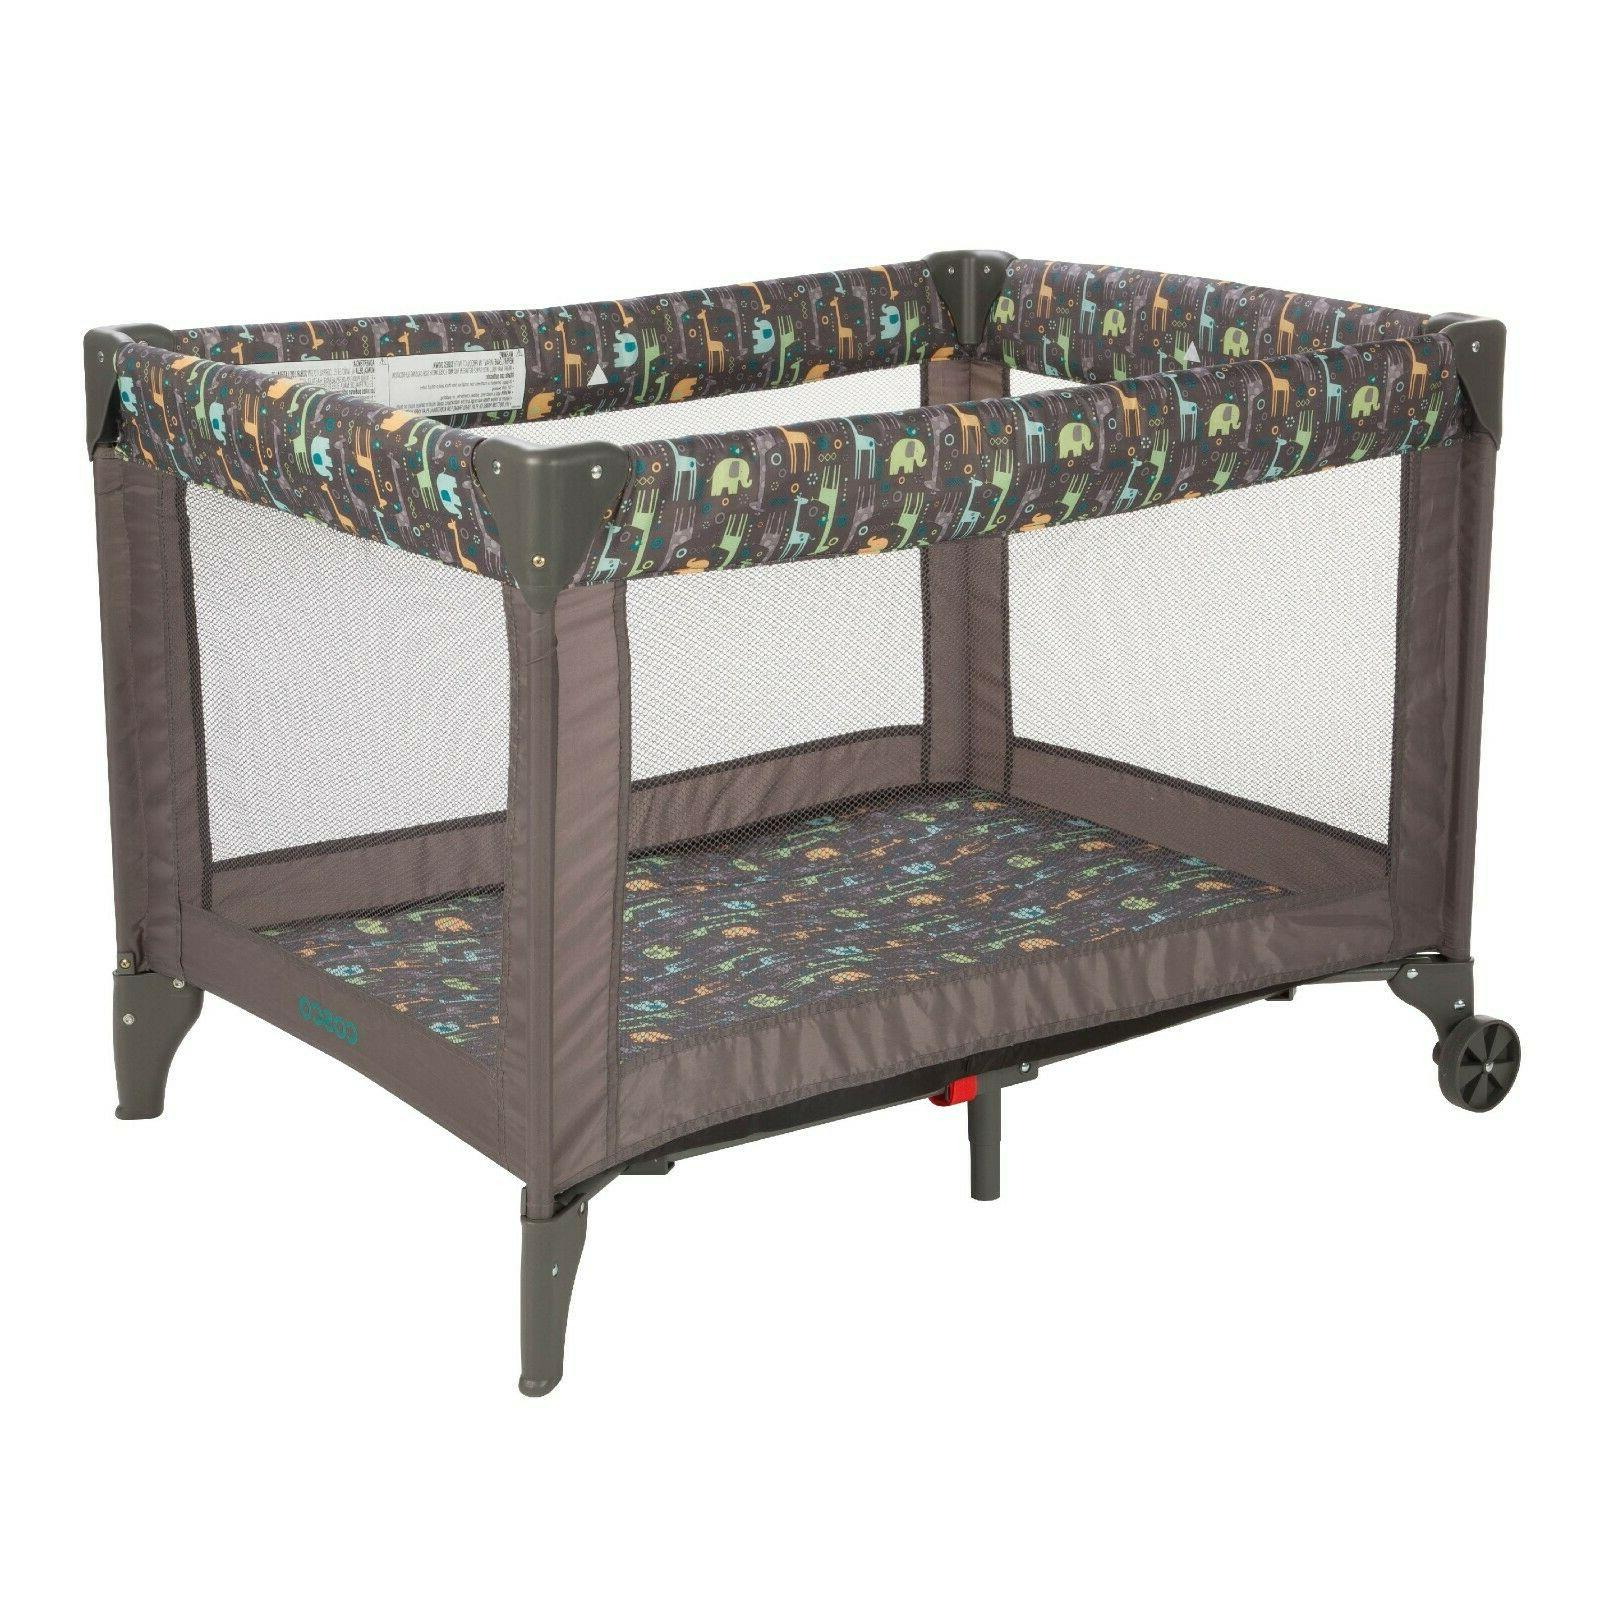 Cosco Playpen, Baby & Toddler Safety Play Yard Fence